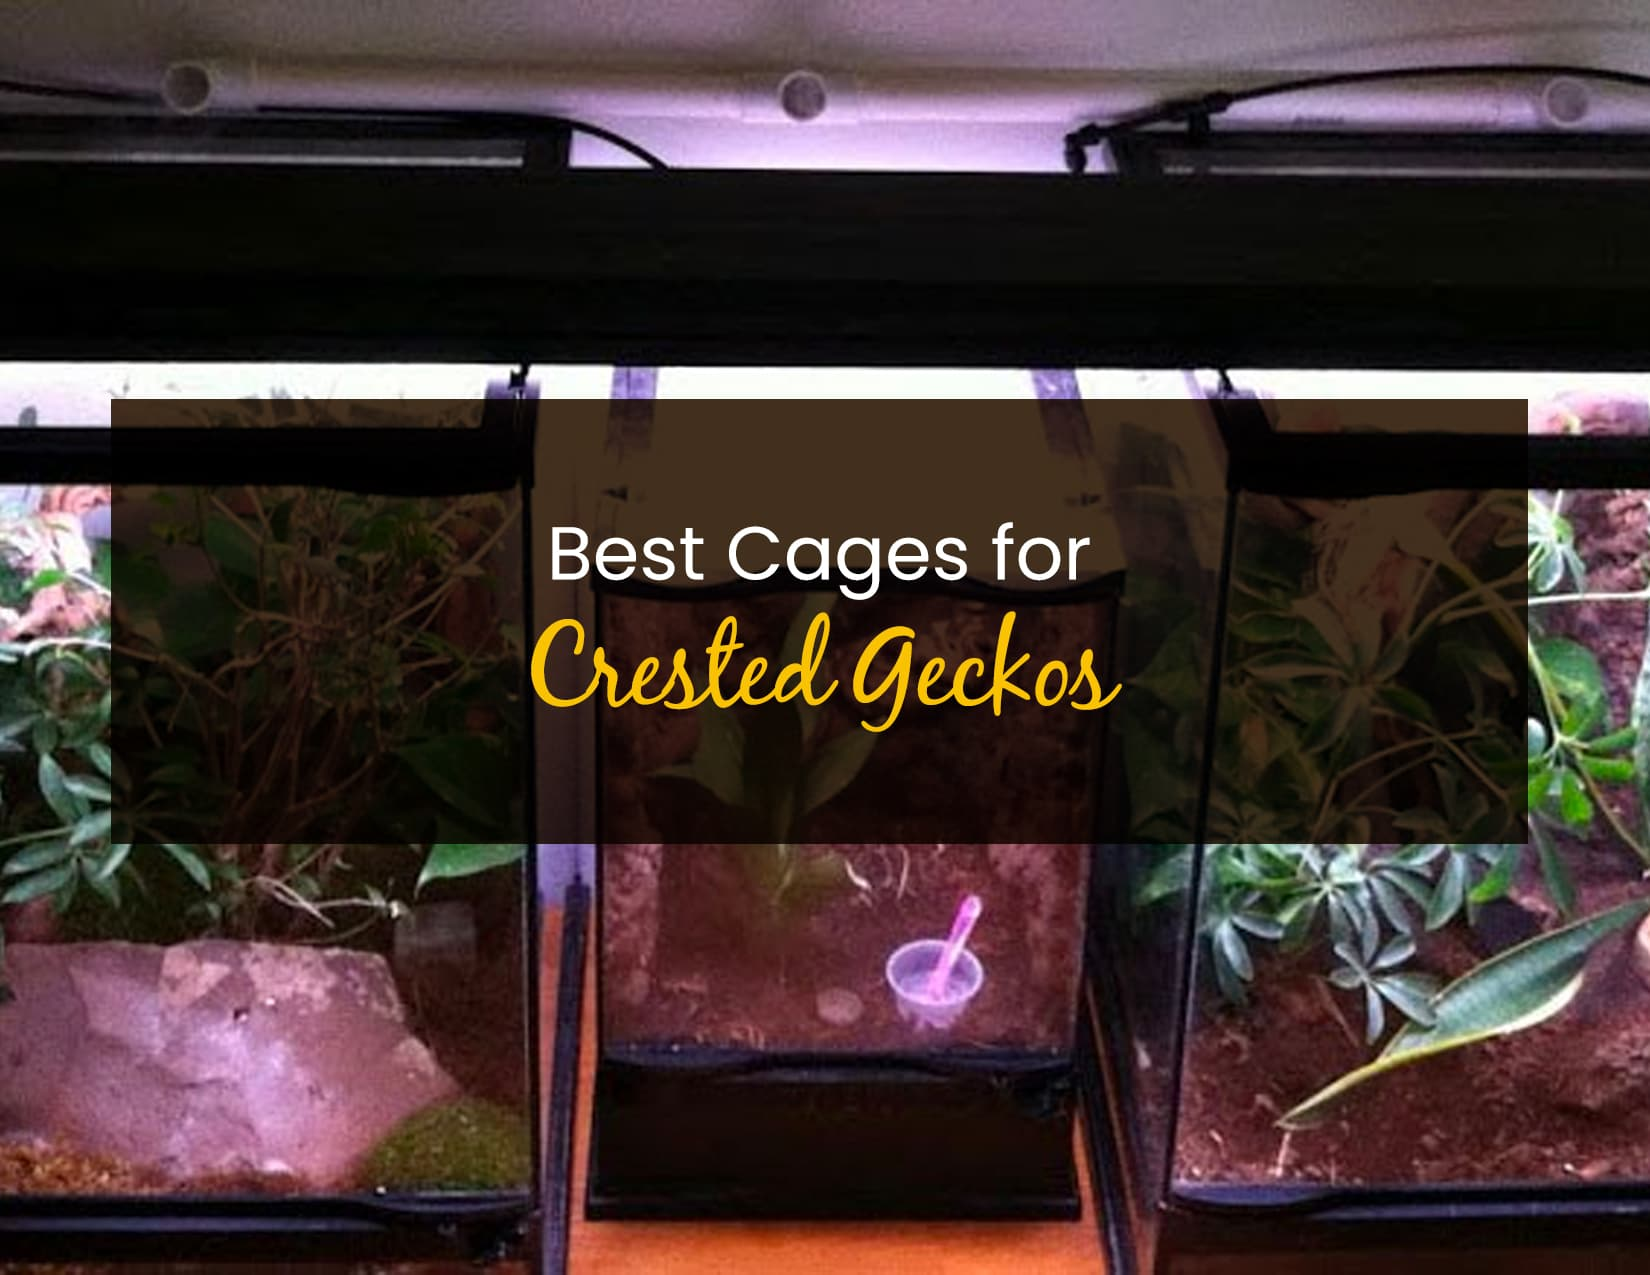 Best Cages for Crested Geckos - WP